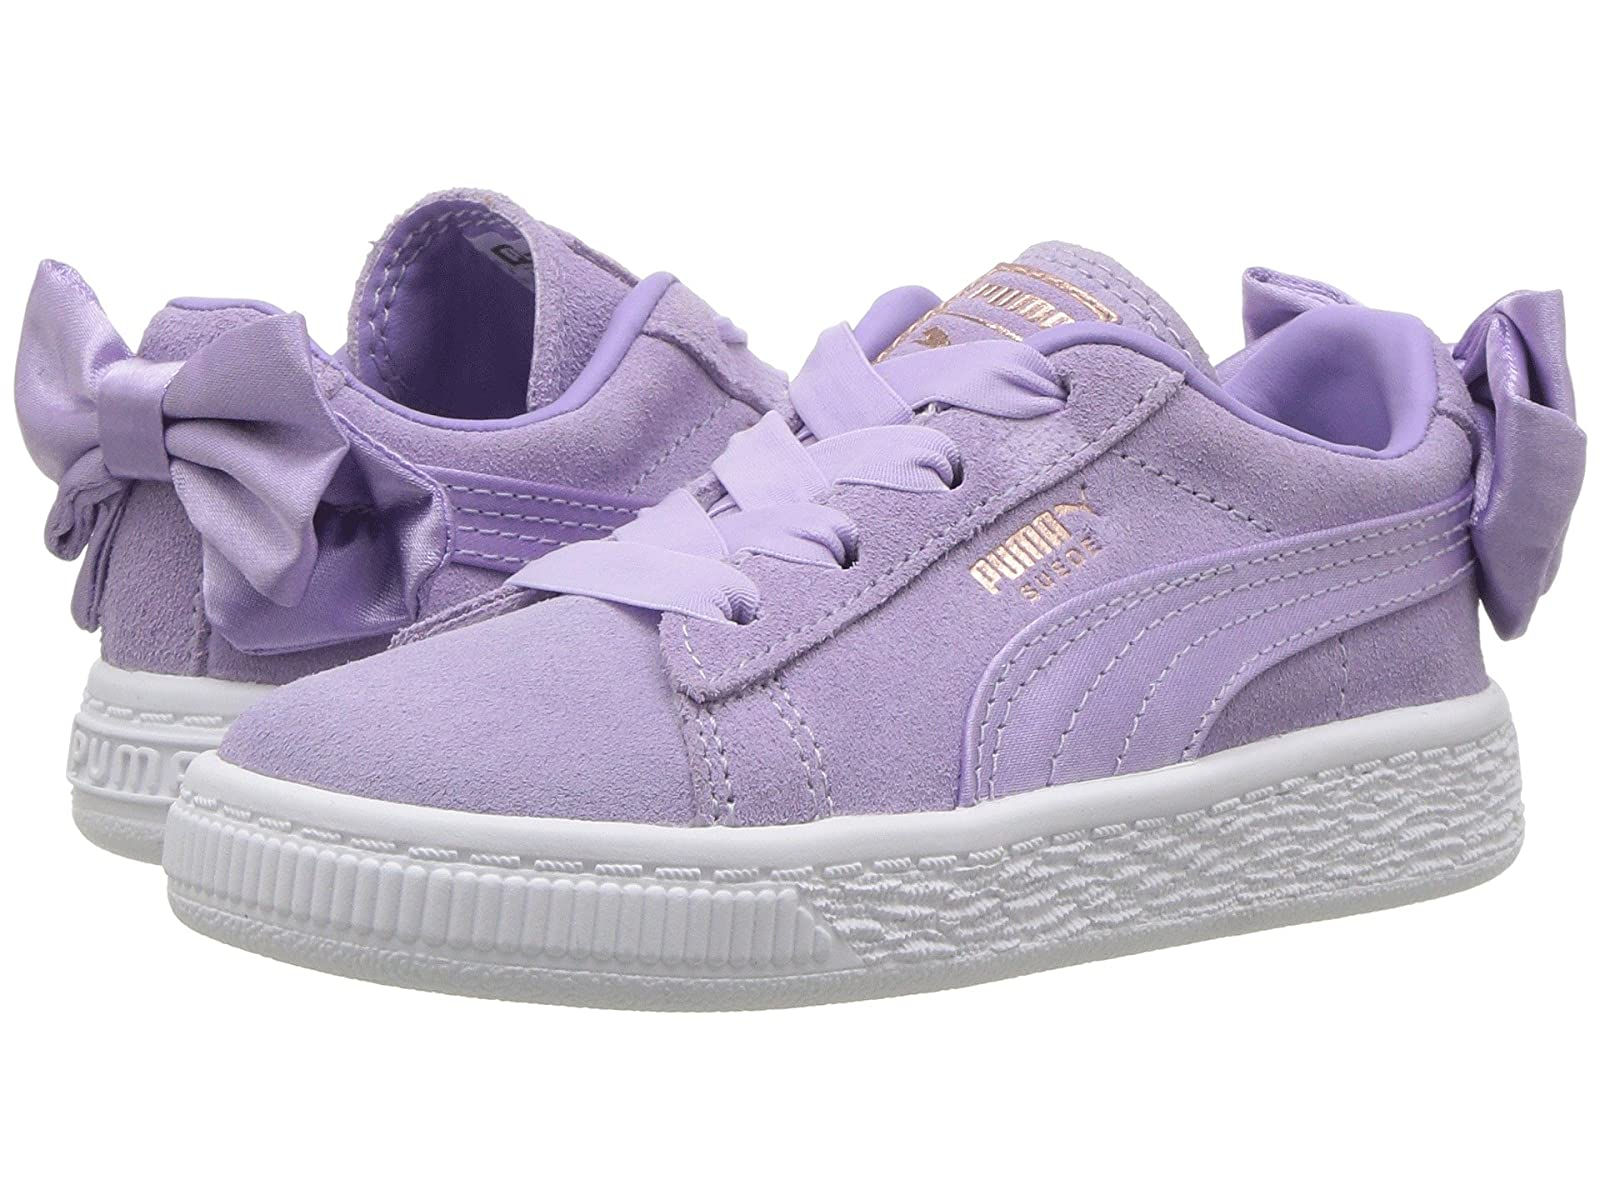 Puma Kids Suede Bow AC INF (Toddler)Atmospheric grades have affordable shoes